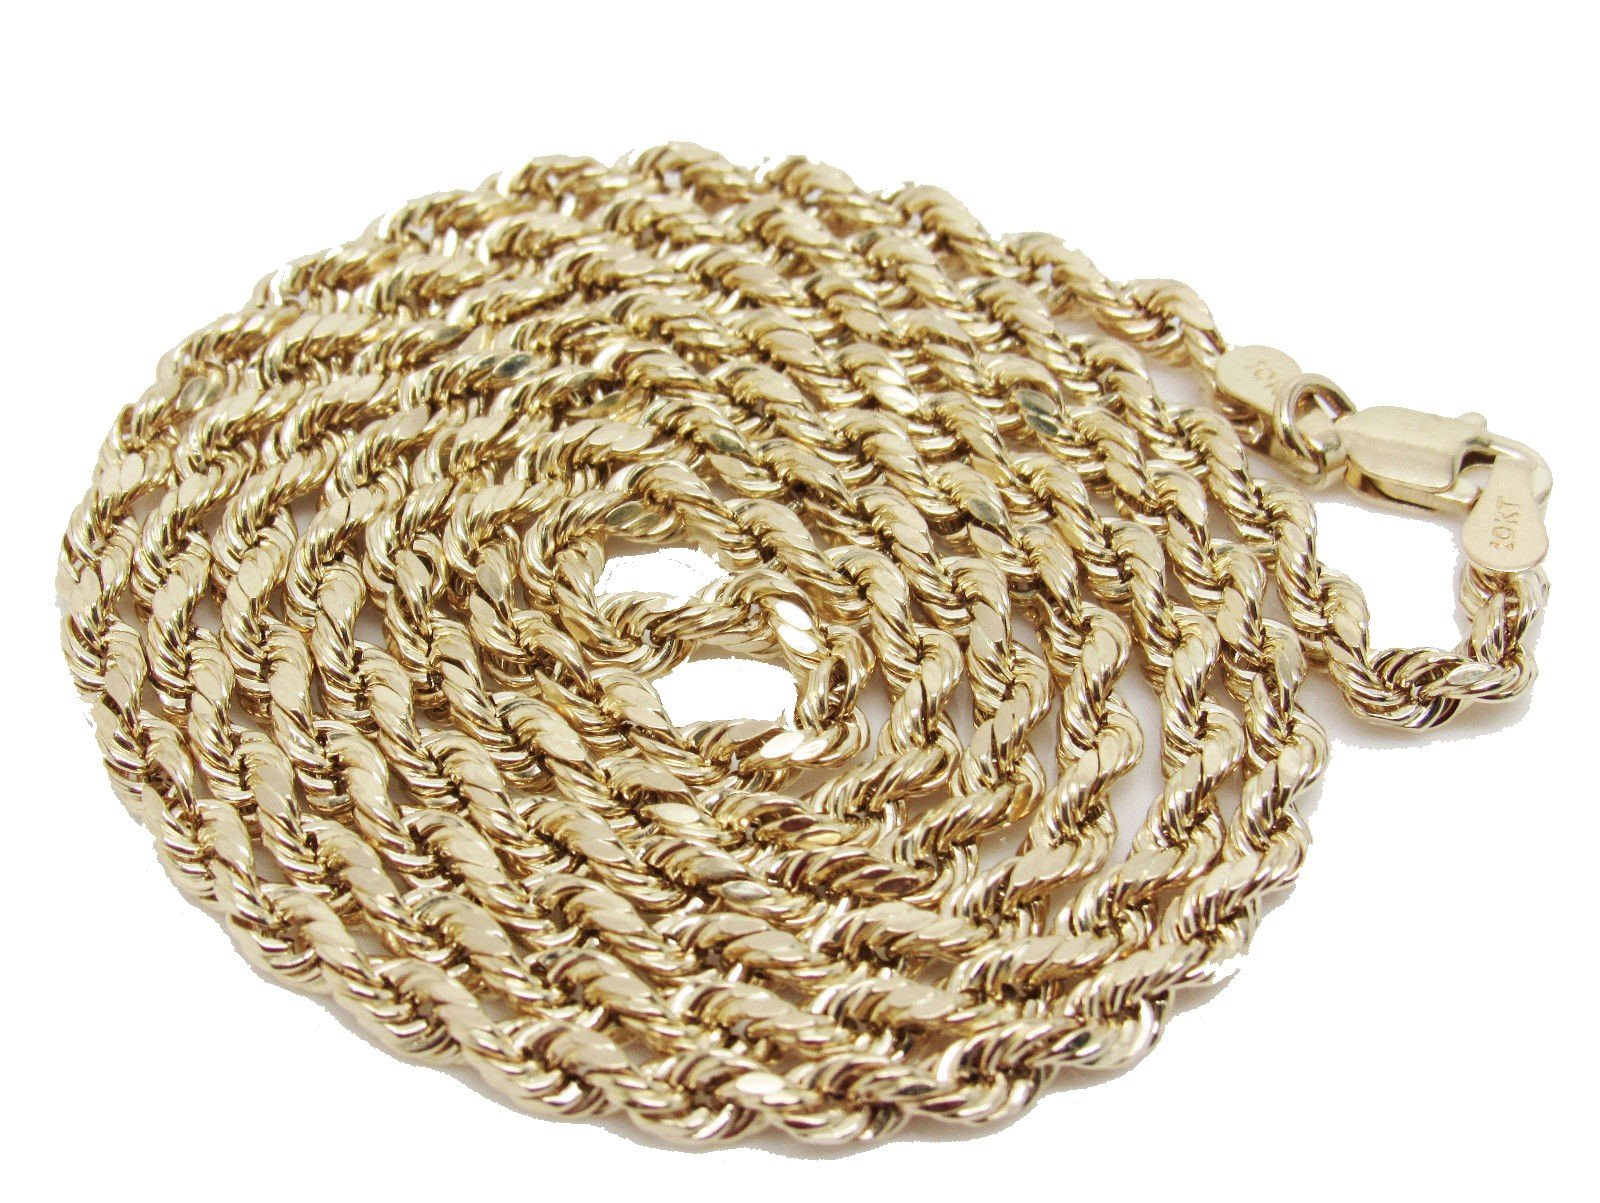 10K Yellow Gold Italian Rope Chain 30'' 3mm wide Hollow 7.4 Grams by Melano Creation (Image #2)